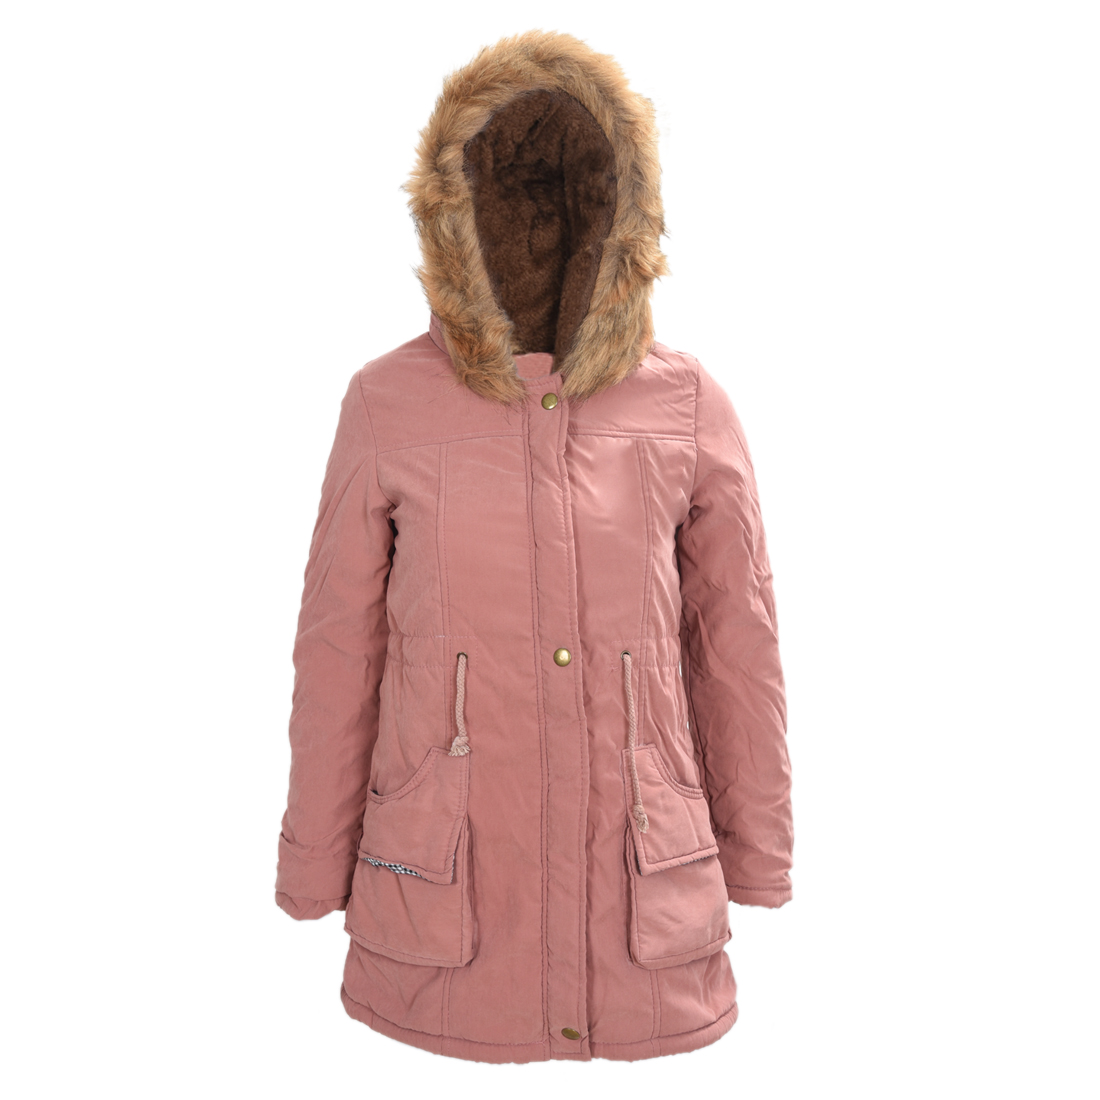 SAF-Women Hooded Fur Winter Thick Padded Long Coat Outerwear Jacket 12-COLORSОдежда и ак�е��уары<br><br><br>Aliexpress